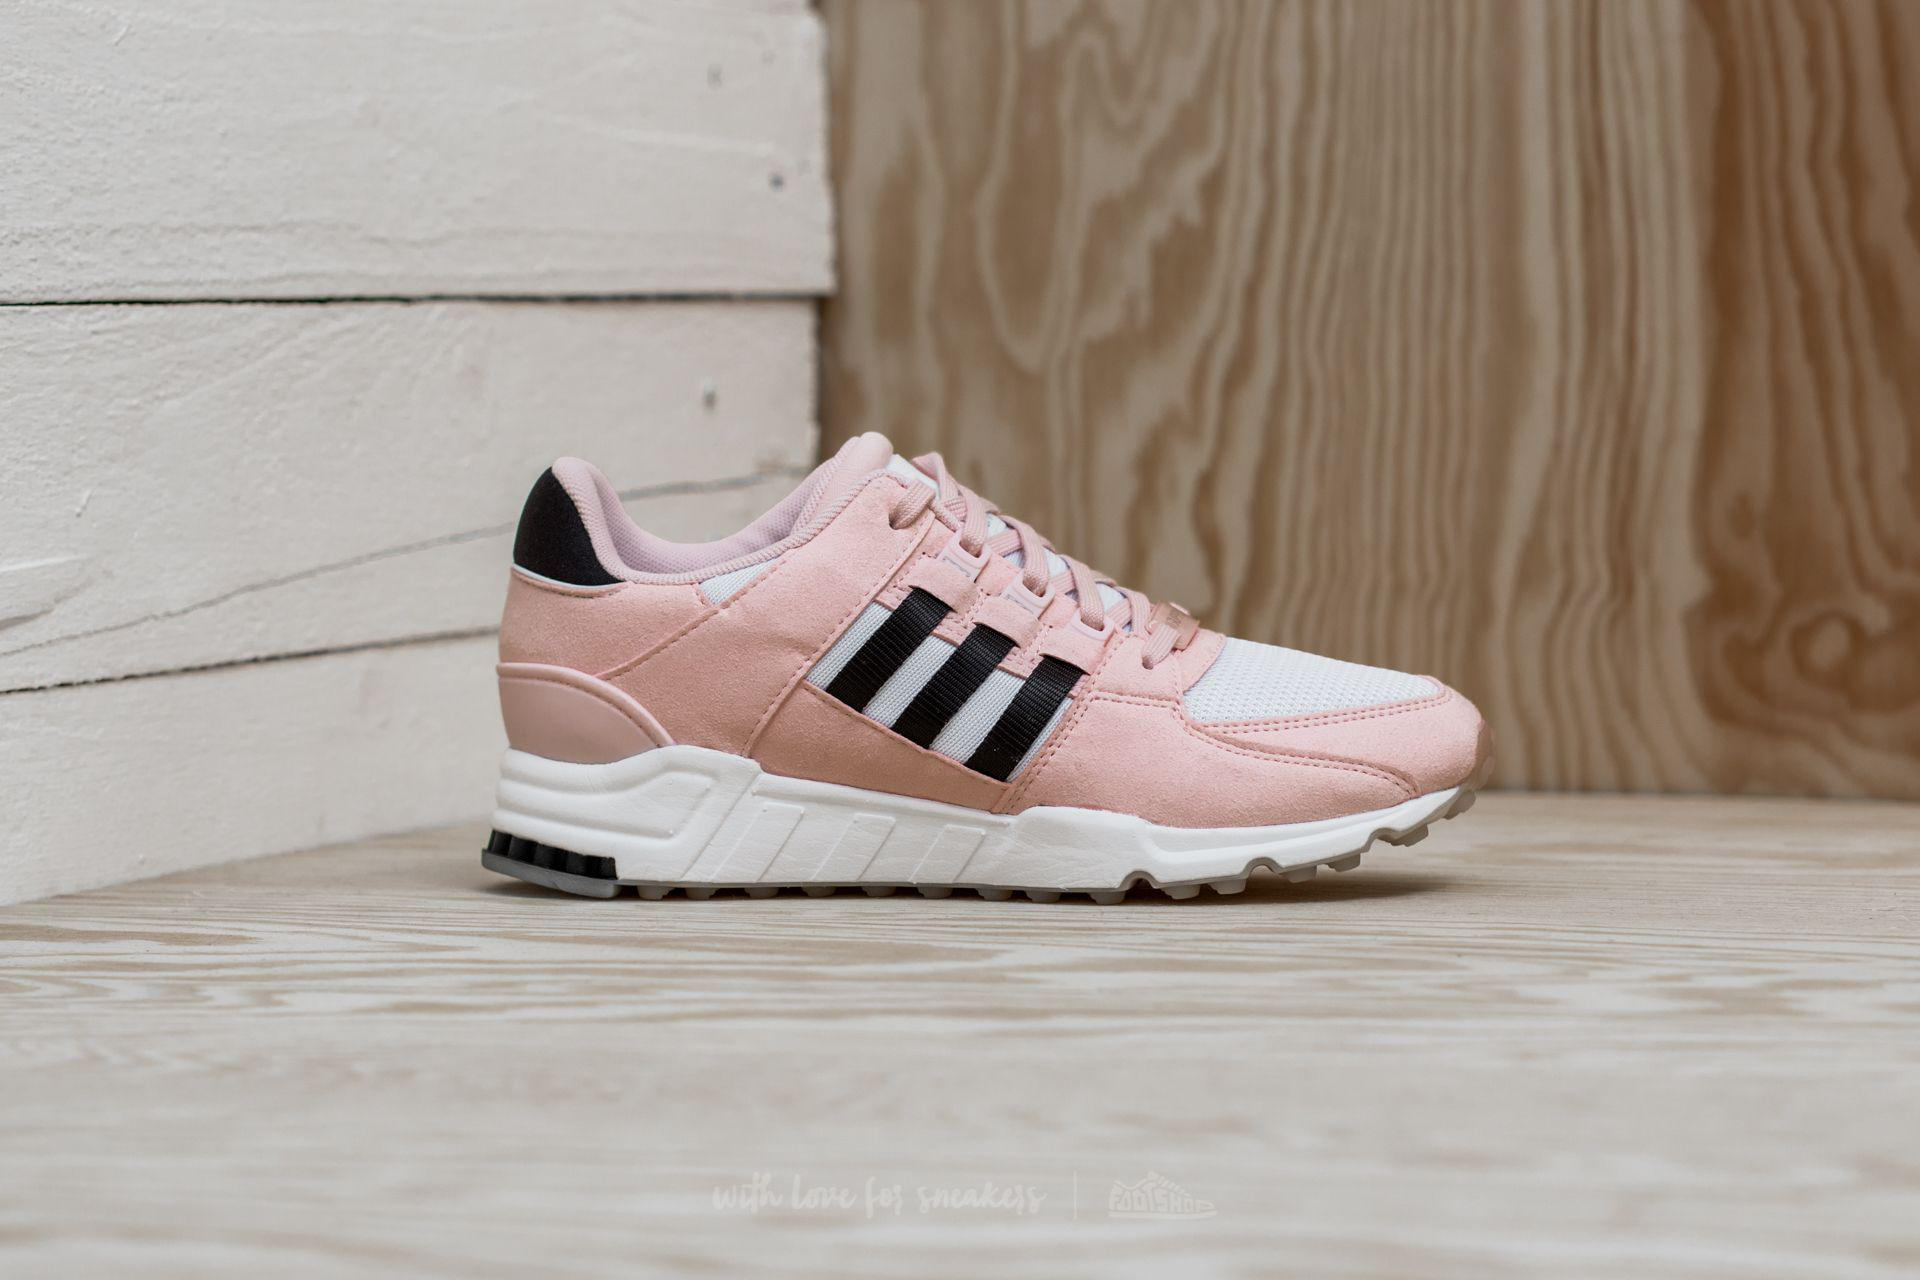 check out 09ac7 ad214 Lyst - adidas Originals Adidas Eqt Support Rf W Icey Pink Co